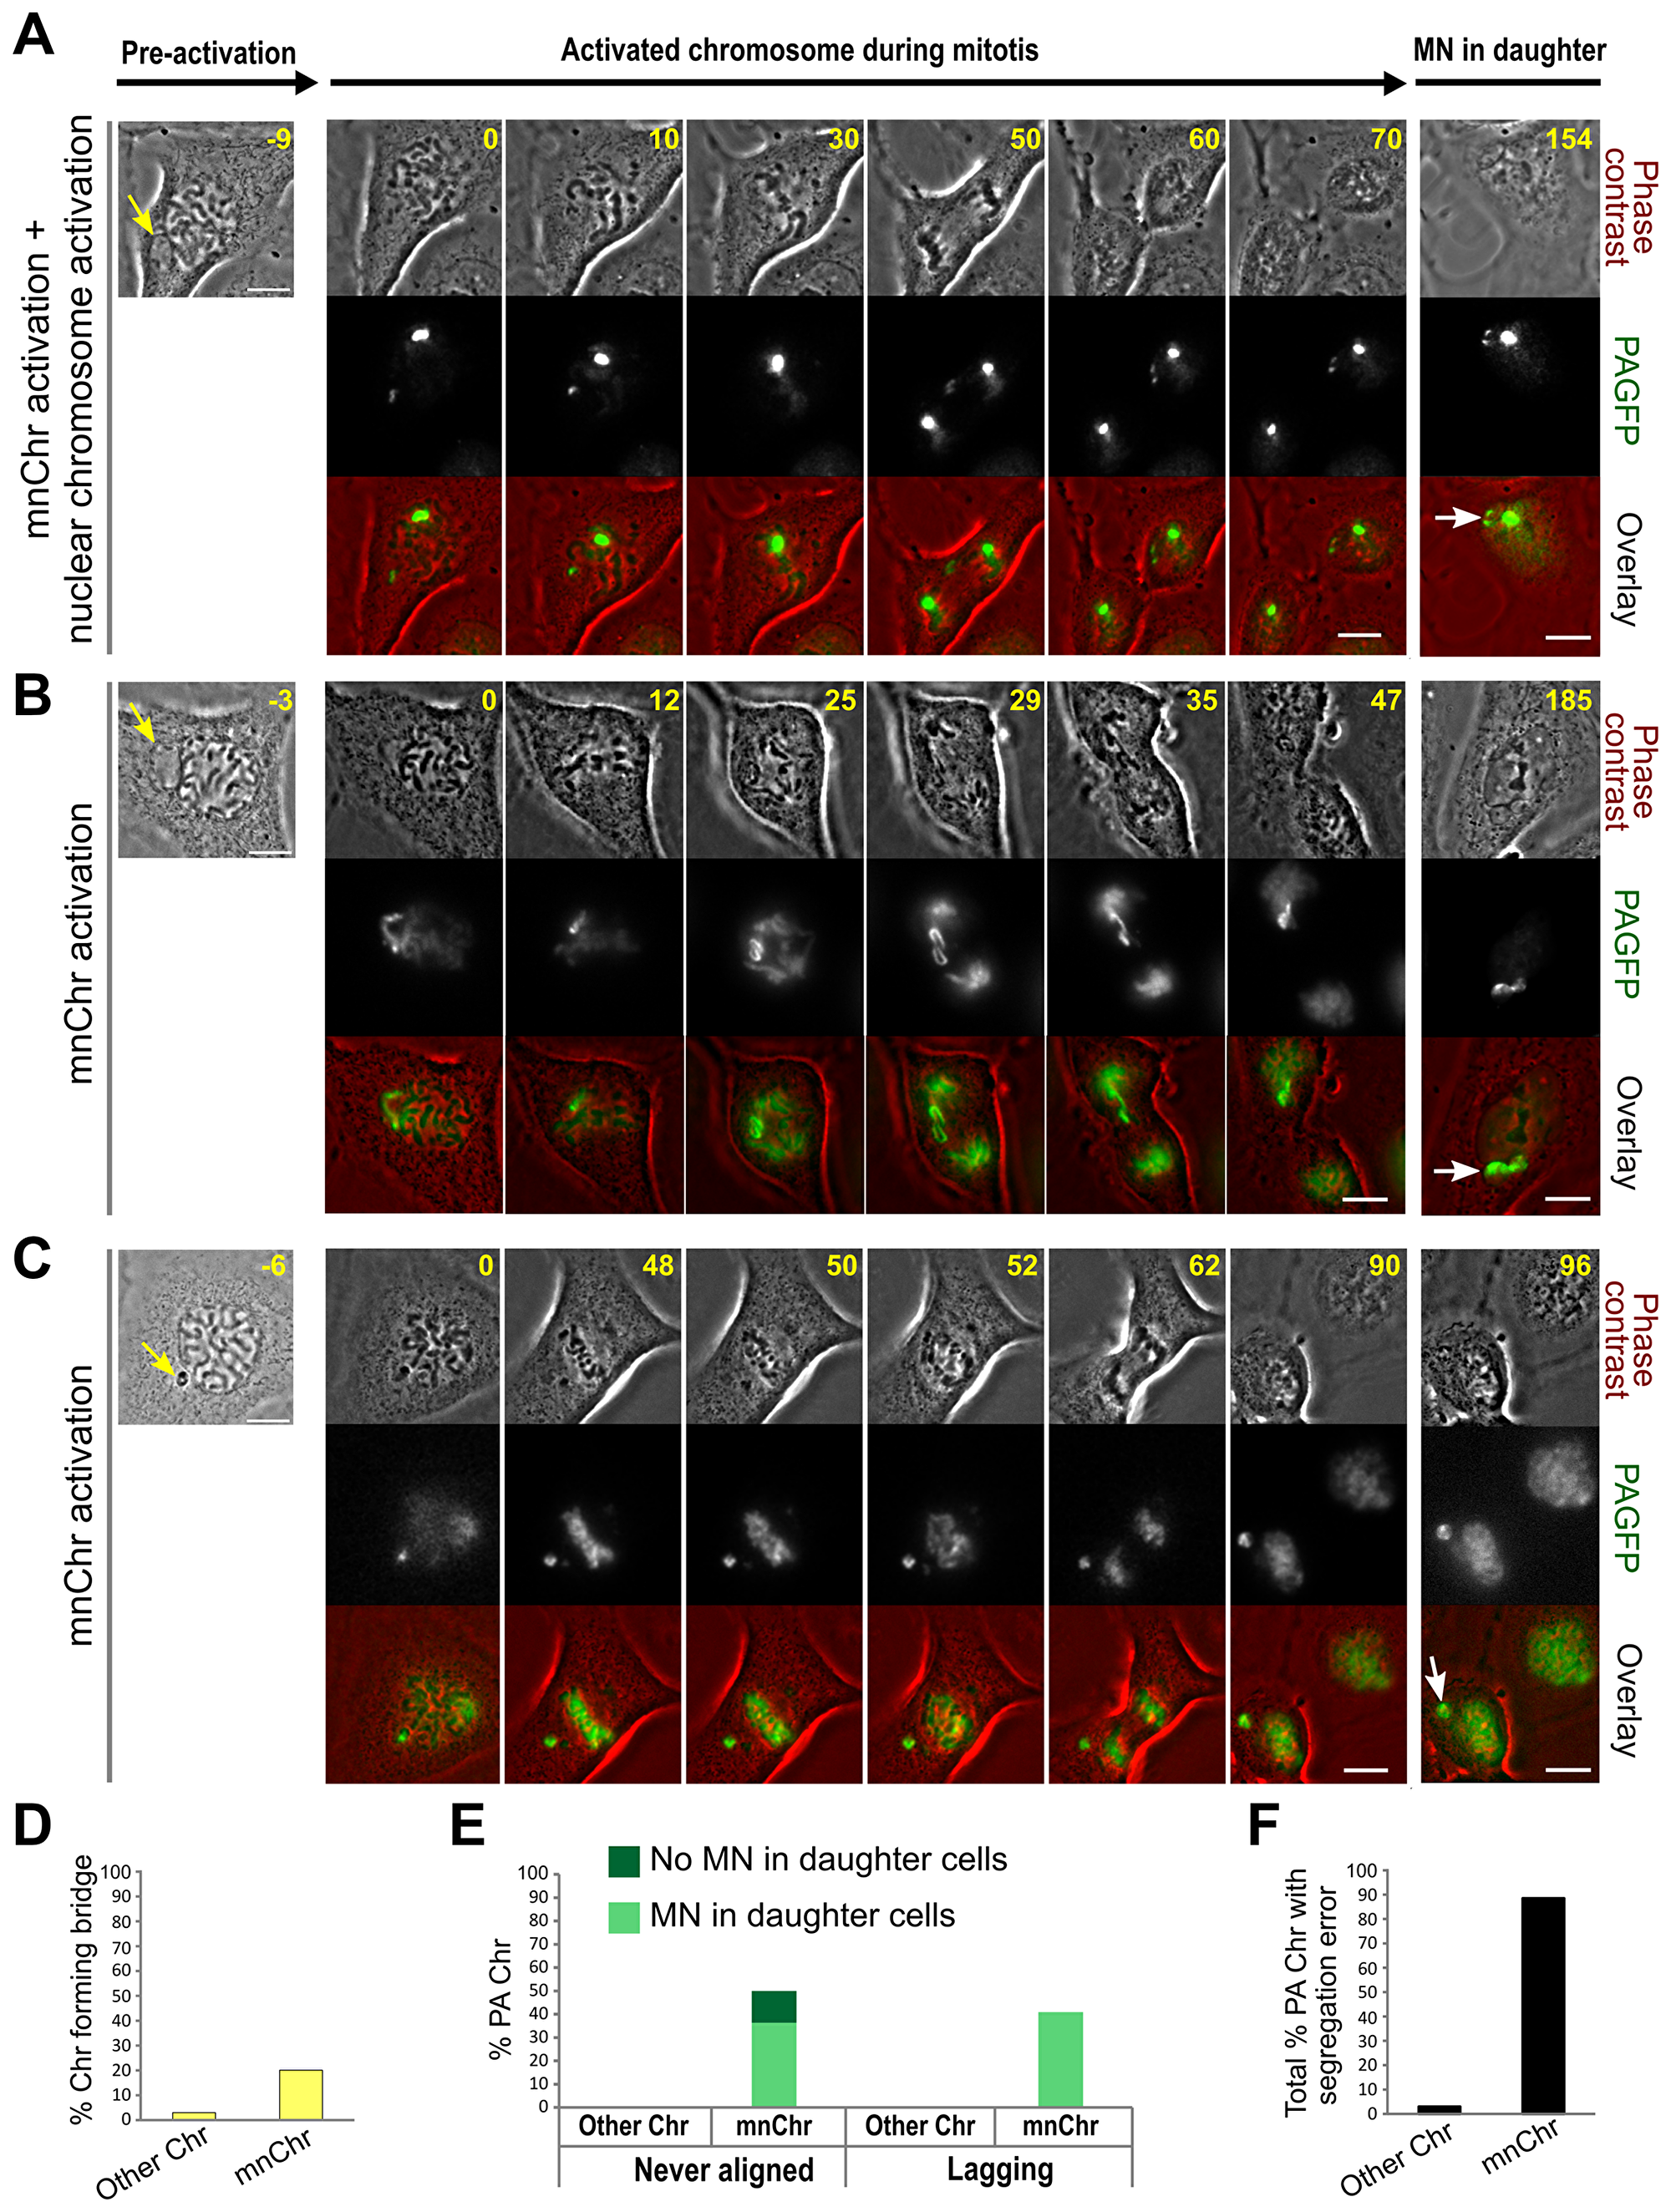 MN photoactivation shows that the mnChr is responsible for the segregation errors observed in MNed cells.